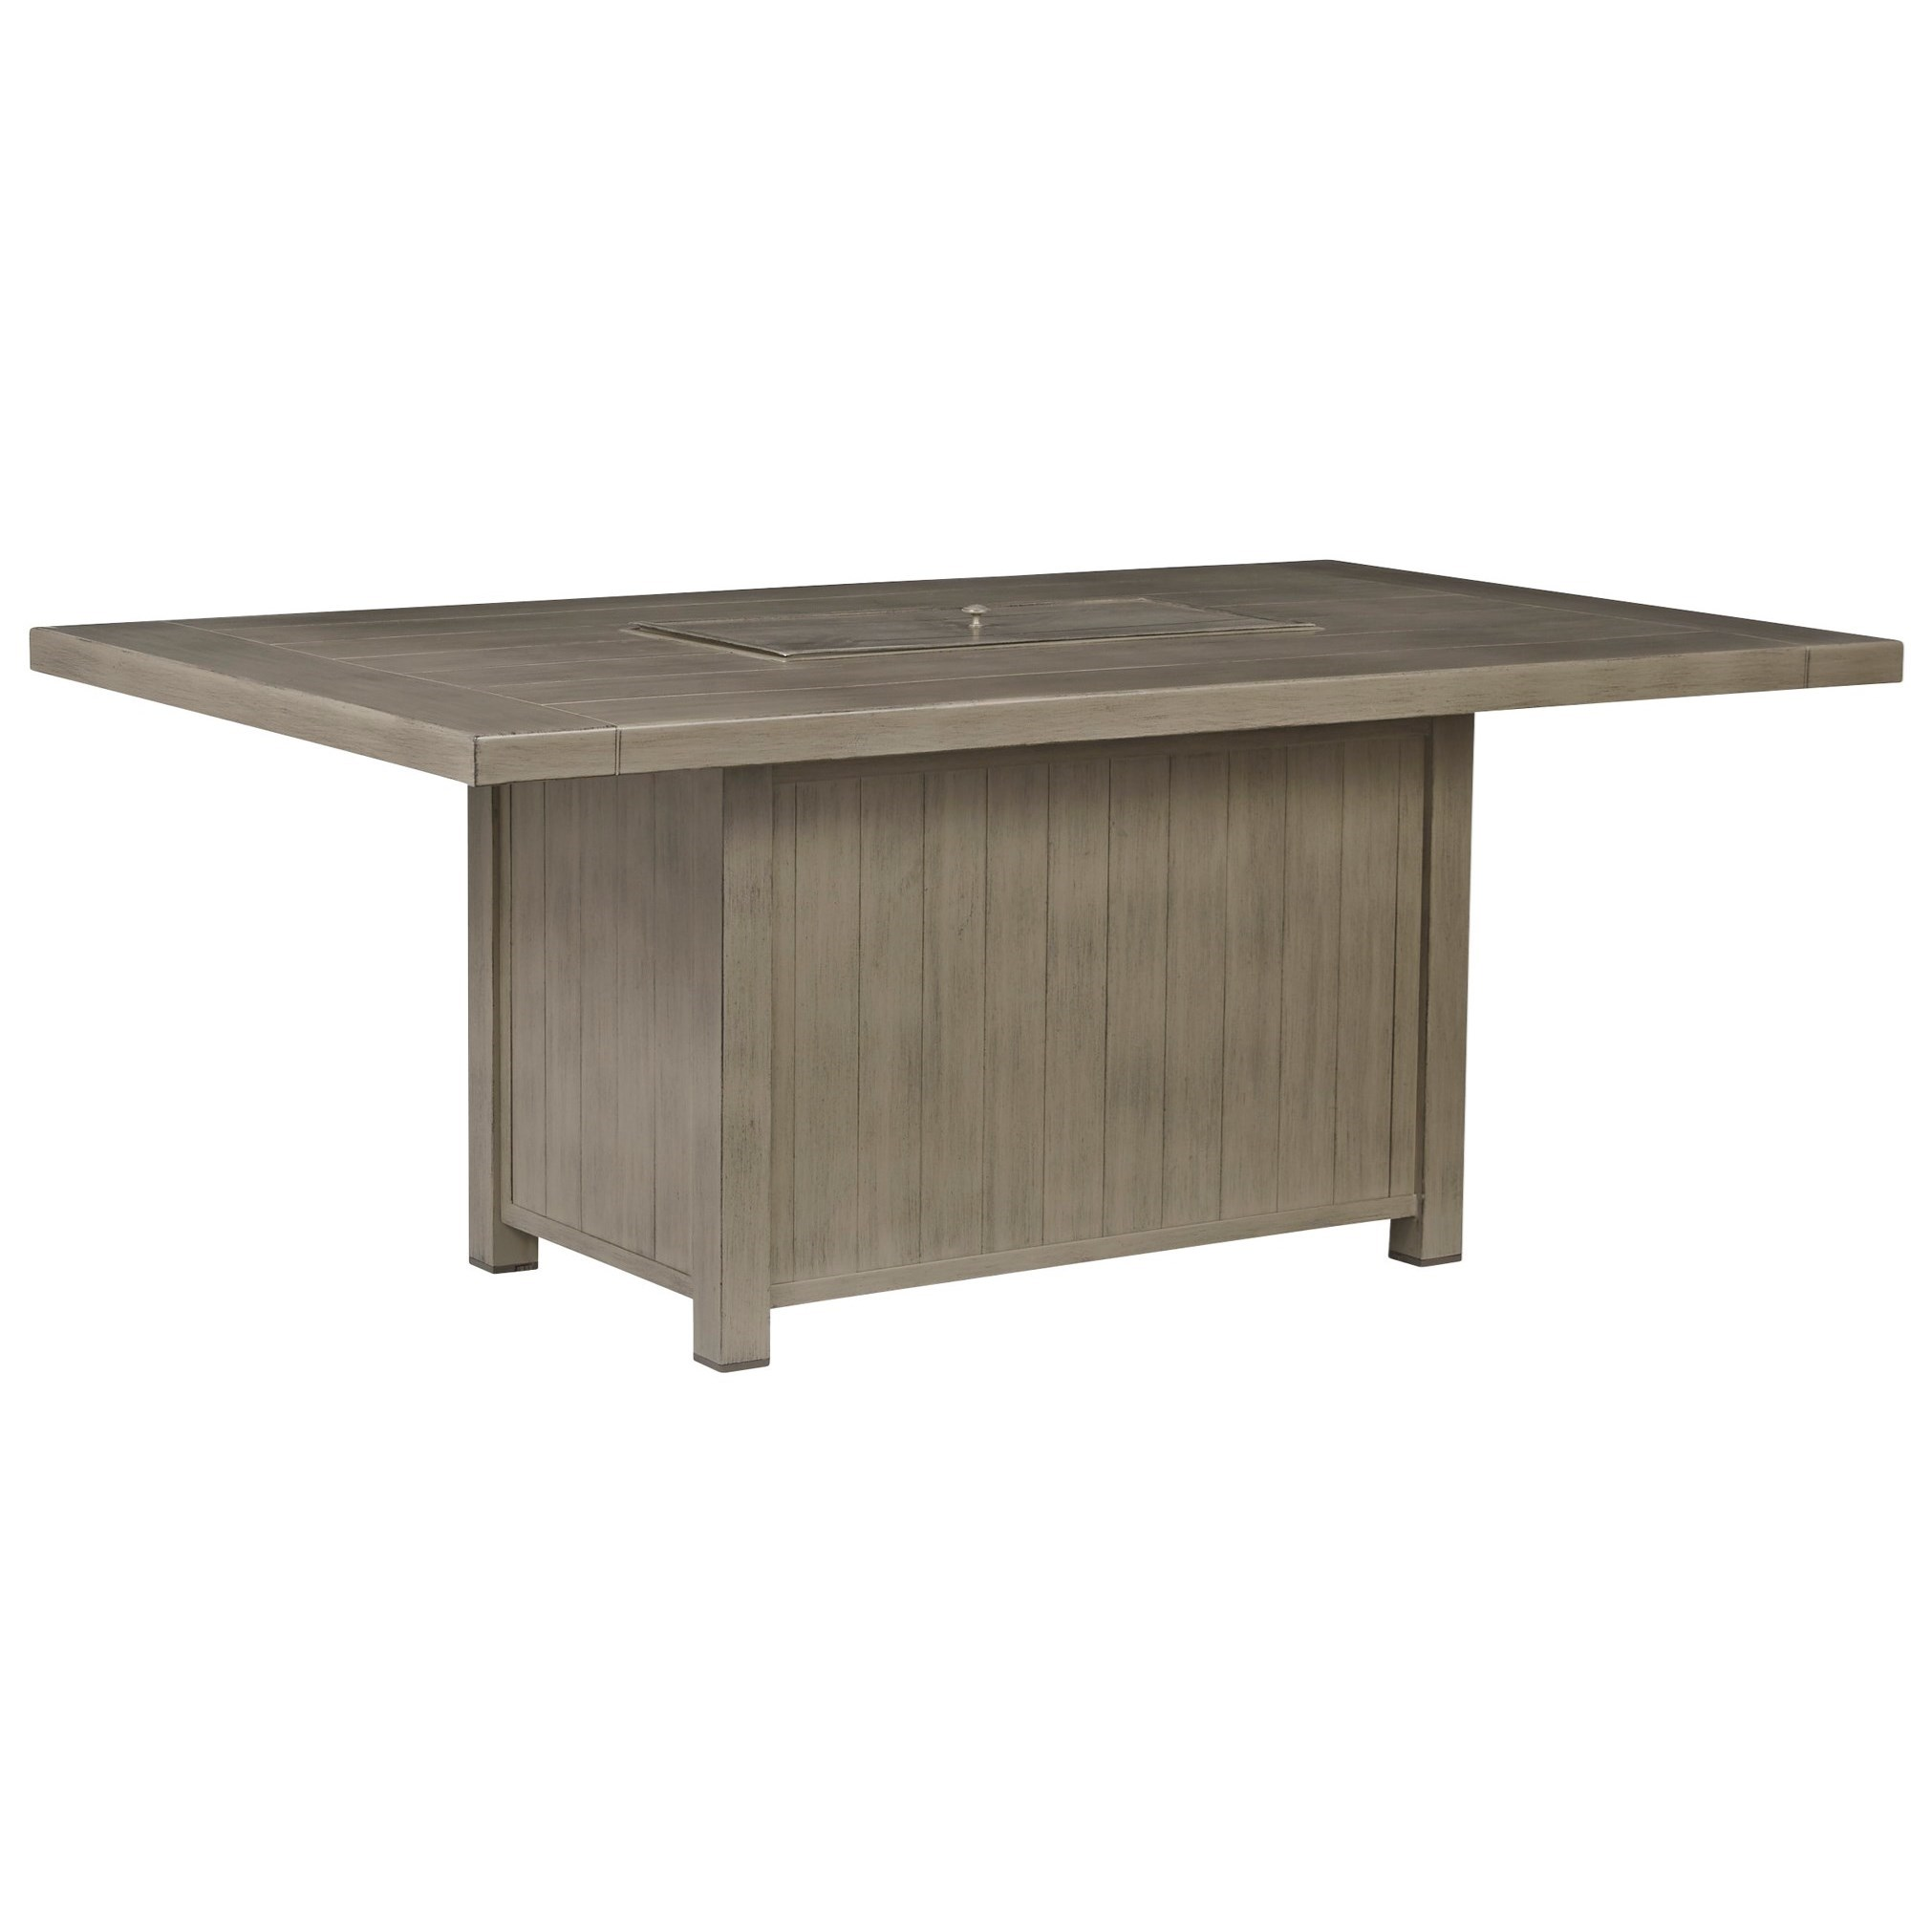 Windon Barn Rectangular Fire Pit Table by Signature at Walker's Furniture